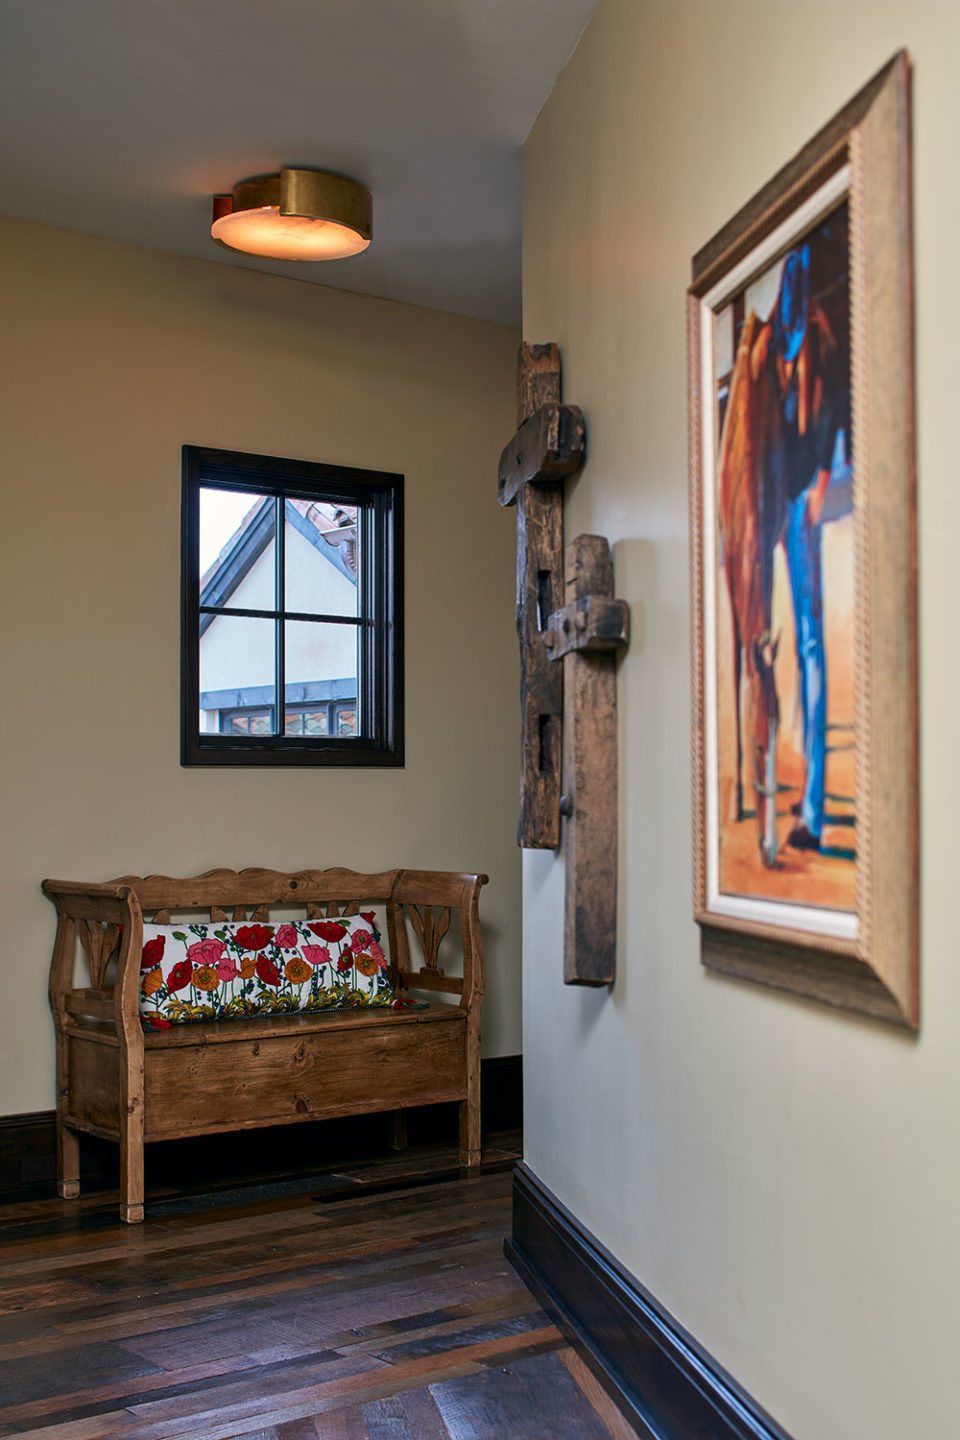 Rustic Hallway with Southwestern Art and Craftwork